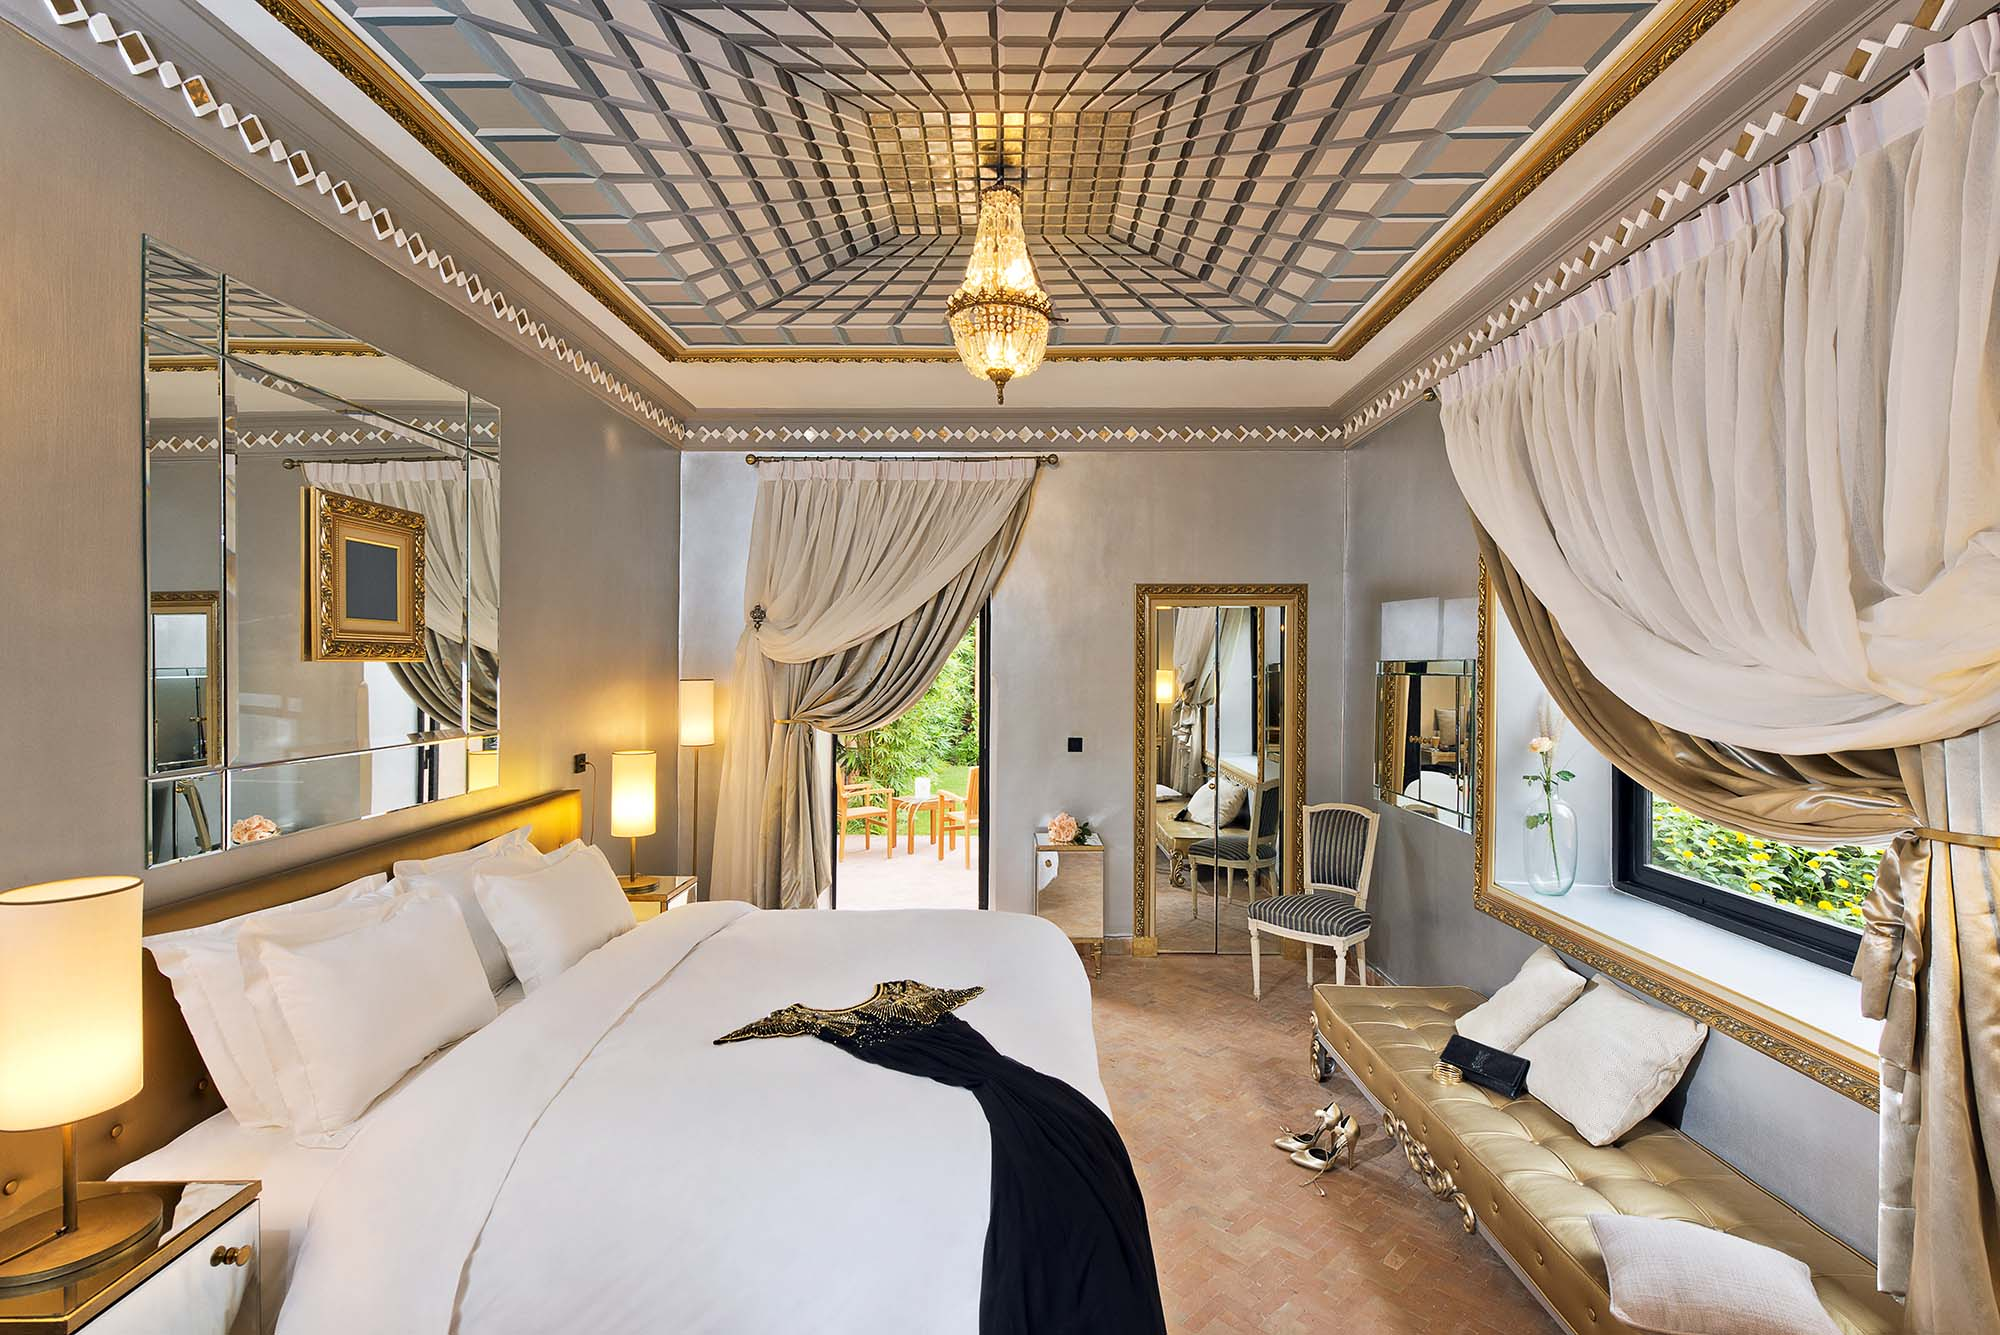 Chambre Deluxe Made in Heaven maison hotes The Source Marrakech